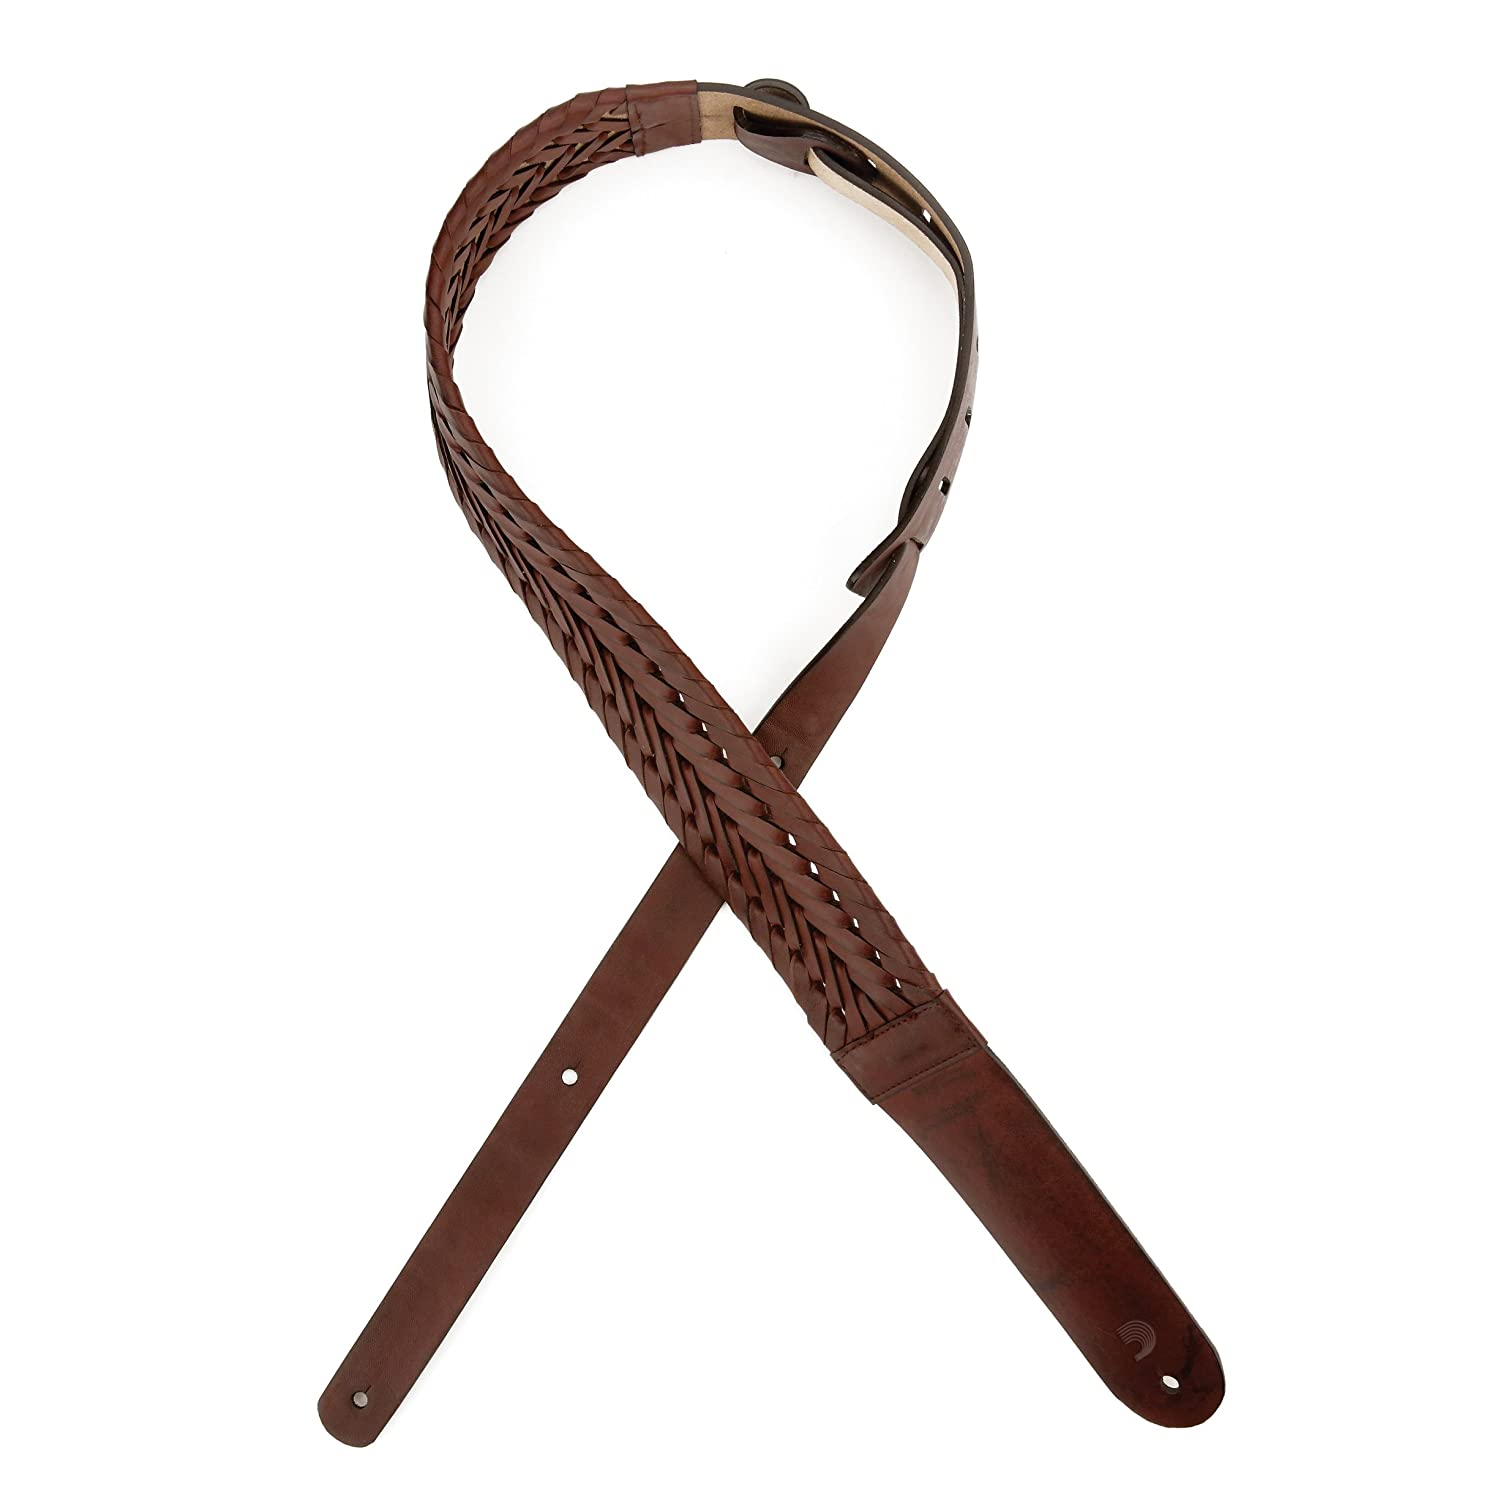 Planet Waves by D'Addario プラネットウェーブス ギターストラップ Madison Collection Braided Leather Guitar Strap L25S1501 Brown 【国内正規品】   B00WGD4MKS